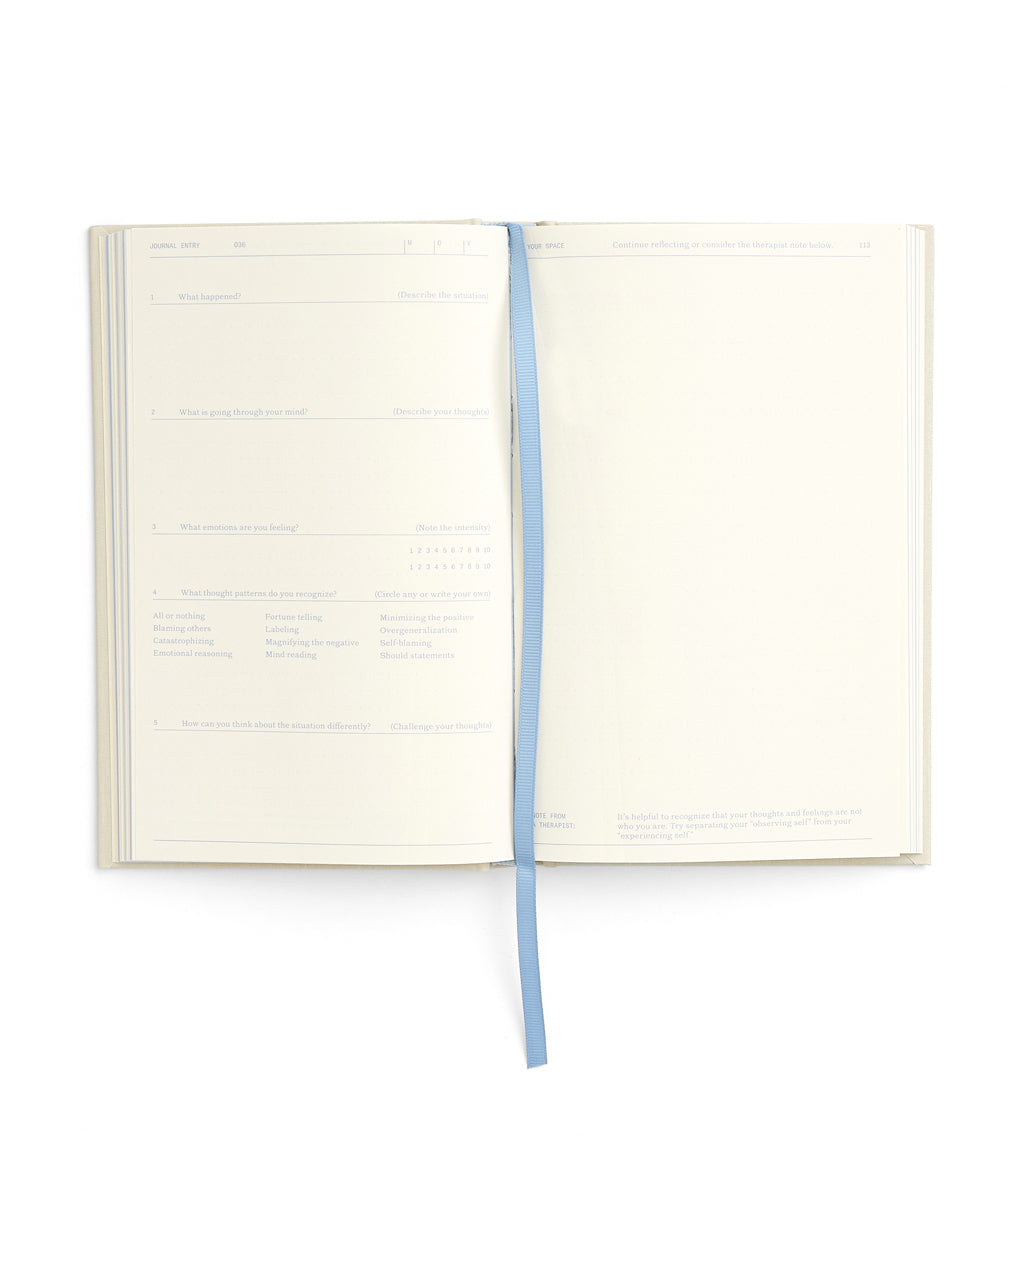 interior image of anxiety notebook